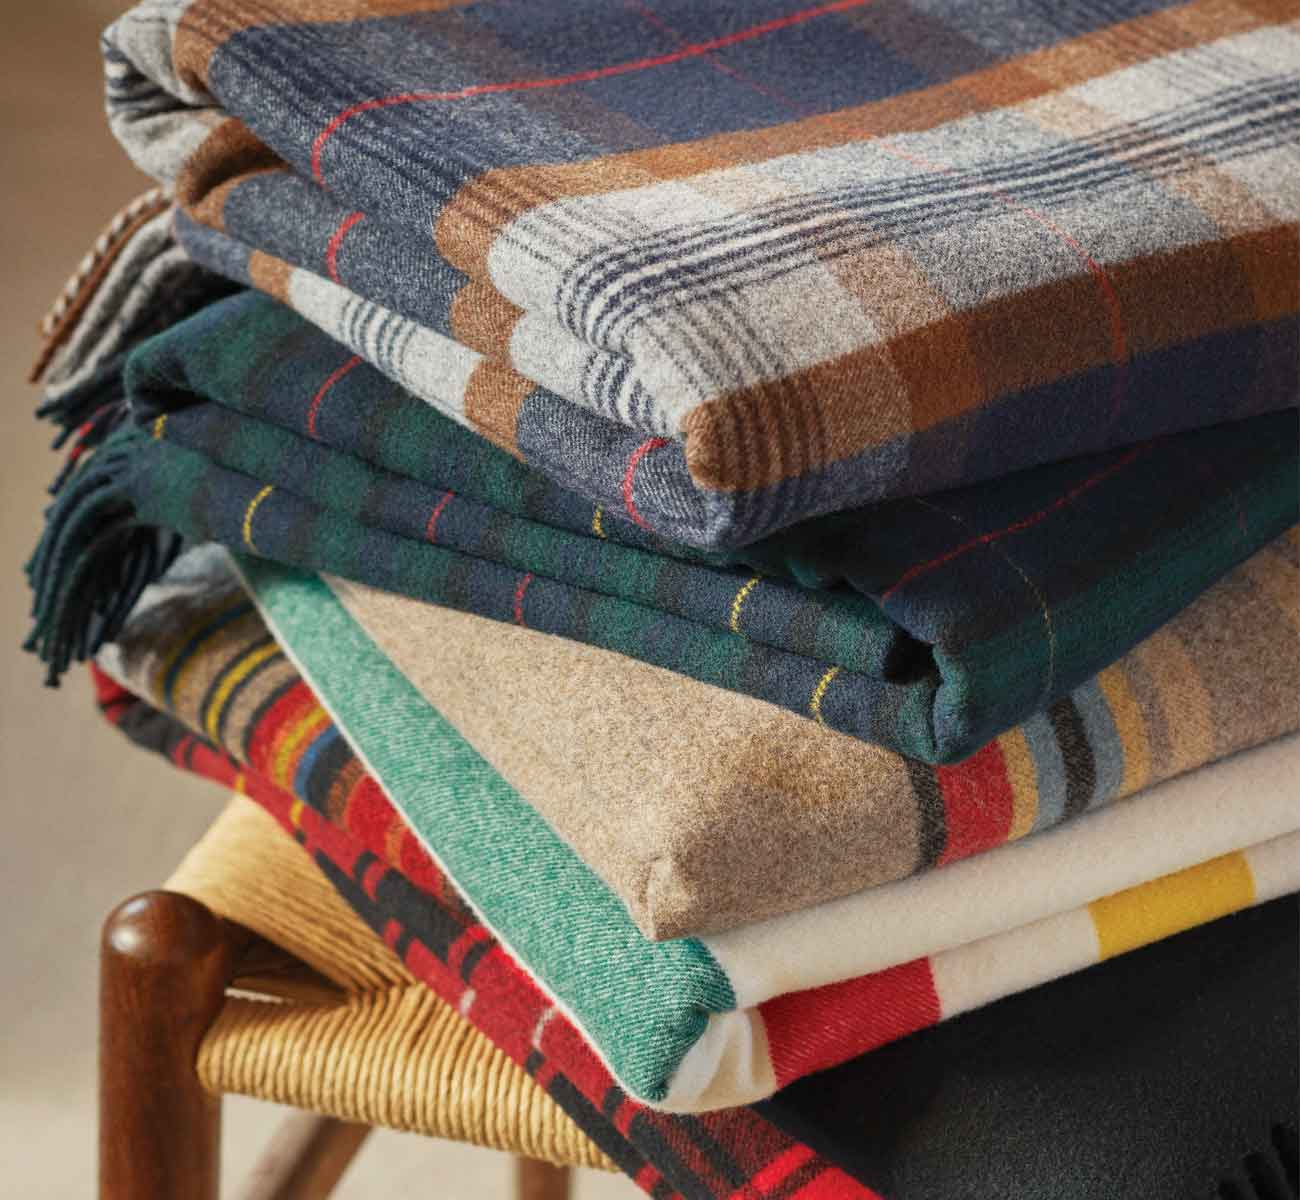 Stack of patterned blankets sitting on a chair